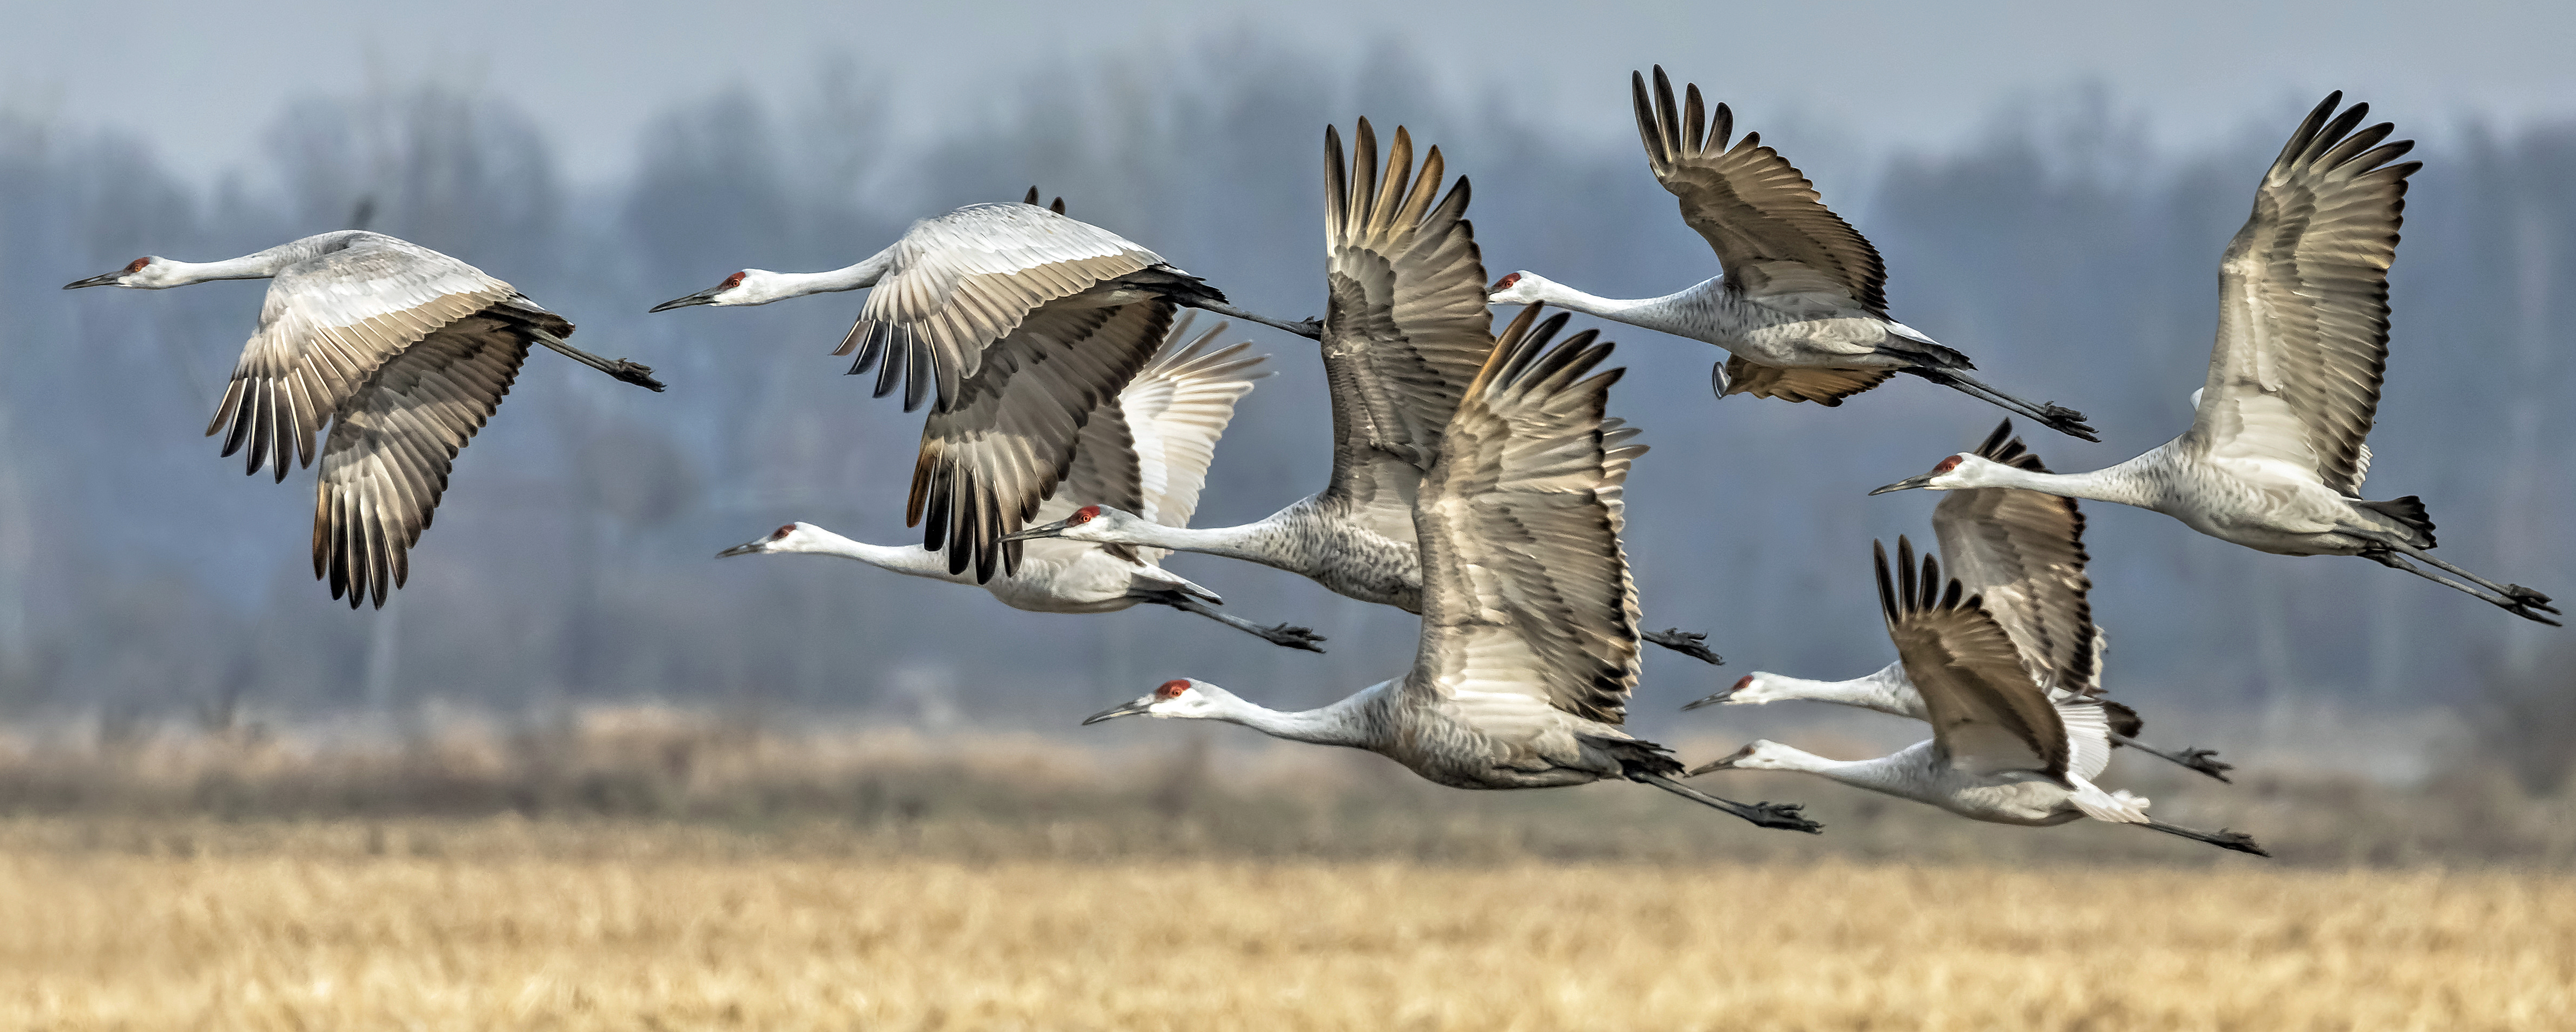 Registration for Sandhill Crane Season Opens September 4